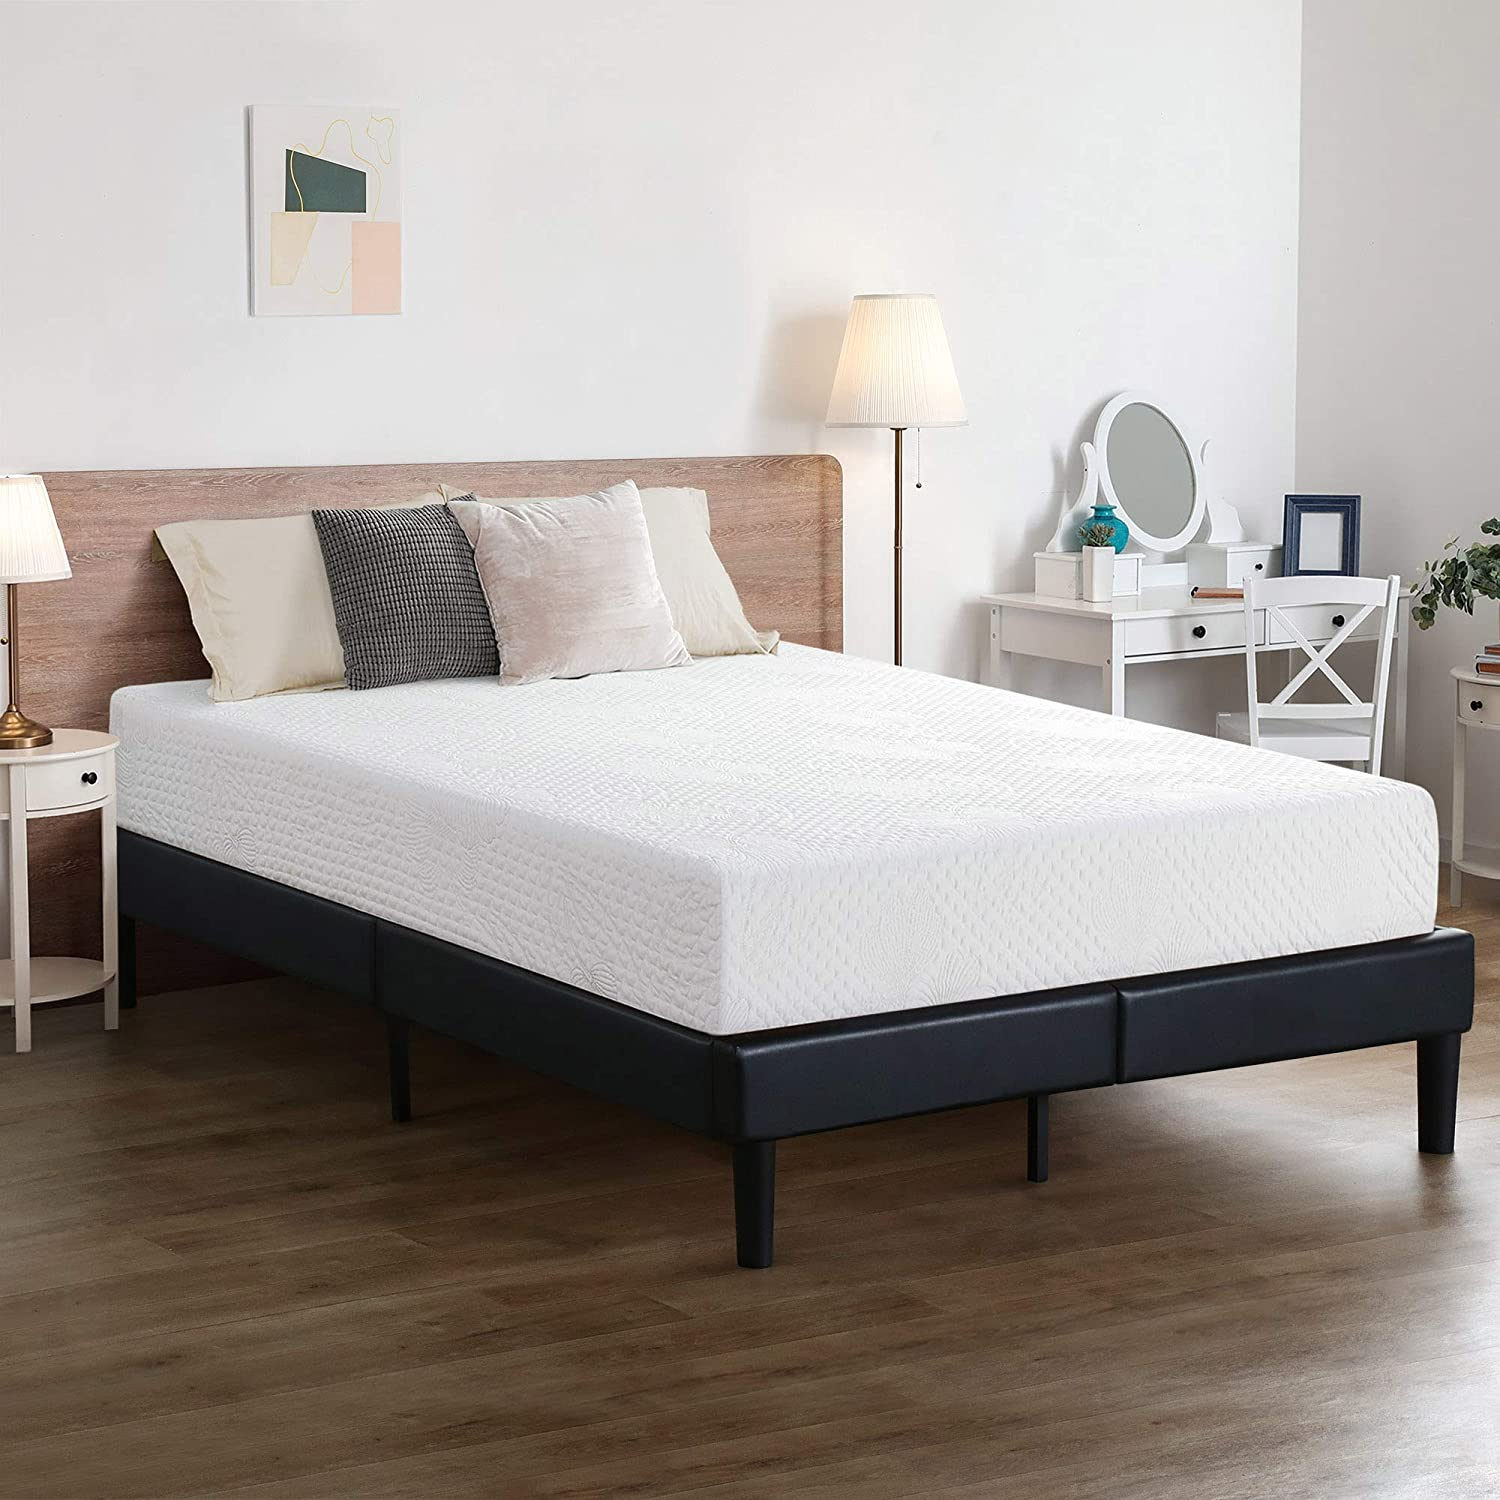 Olee All items free shipping Sleep 6 inch Ventilated Memory Mattress Foam Layered Max 66% OFF Multi